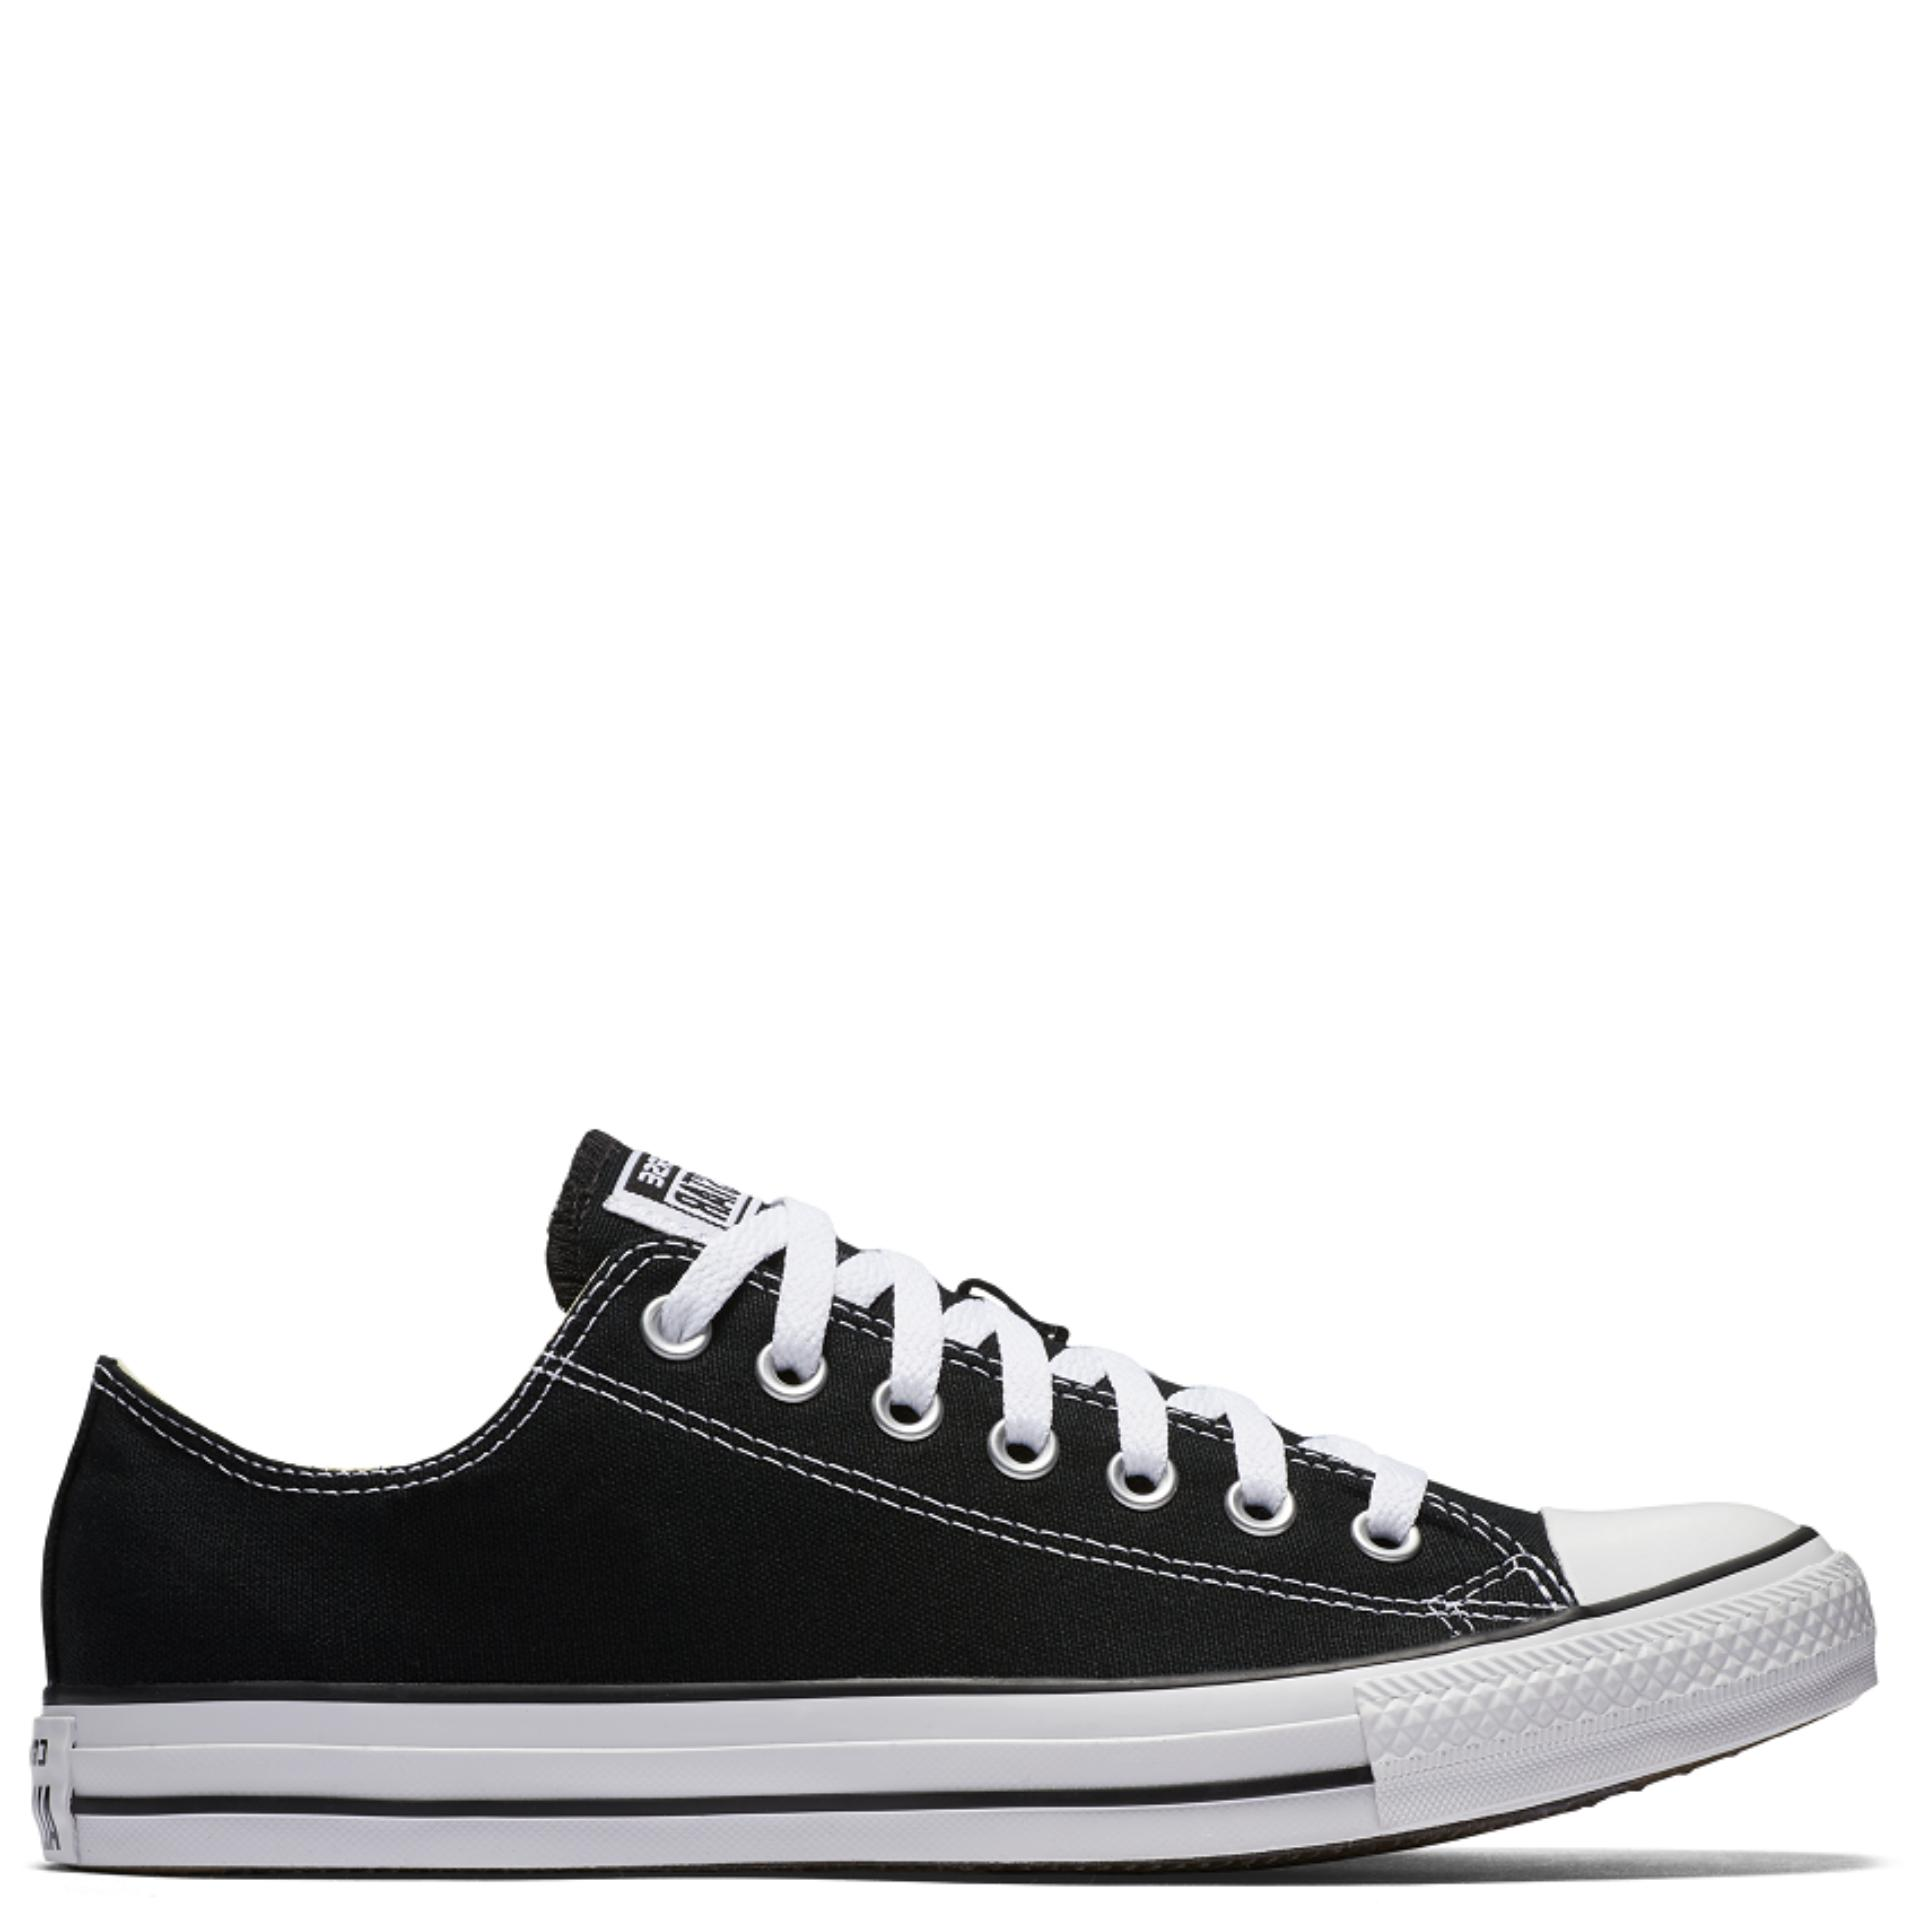 Easy To Take Converse One Star White Black Gold New Year Deals